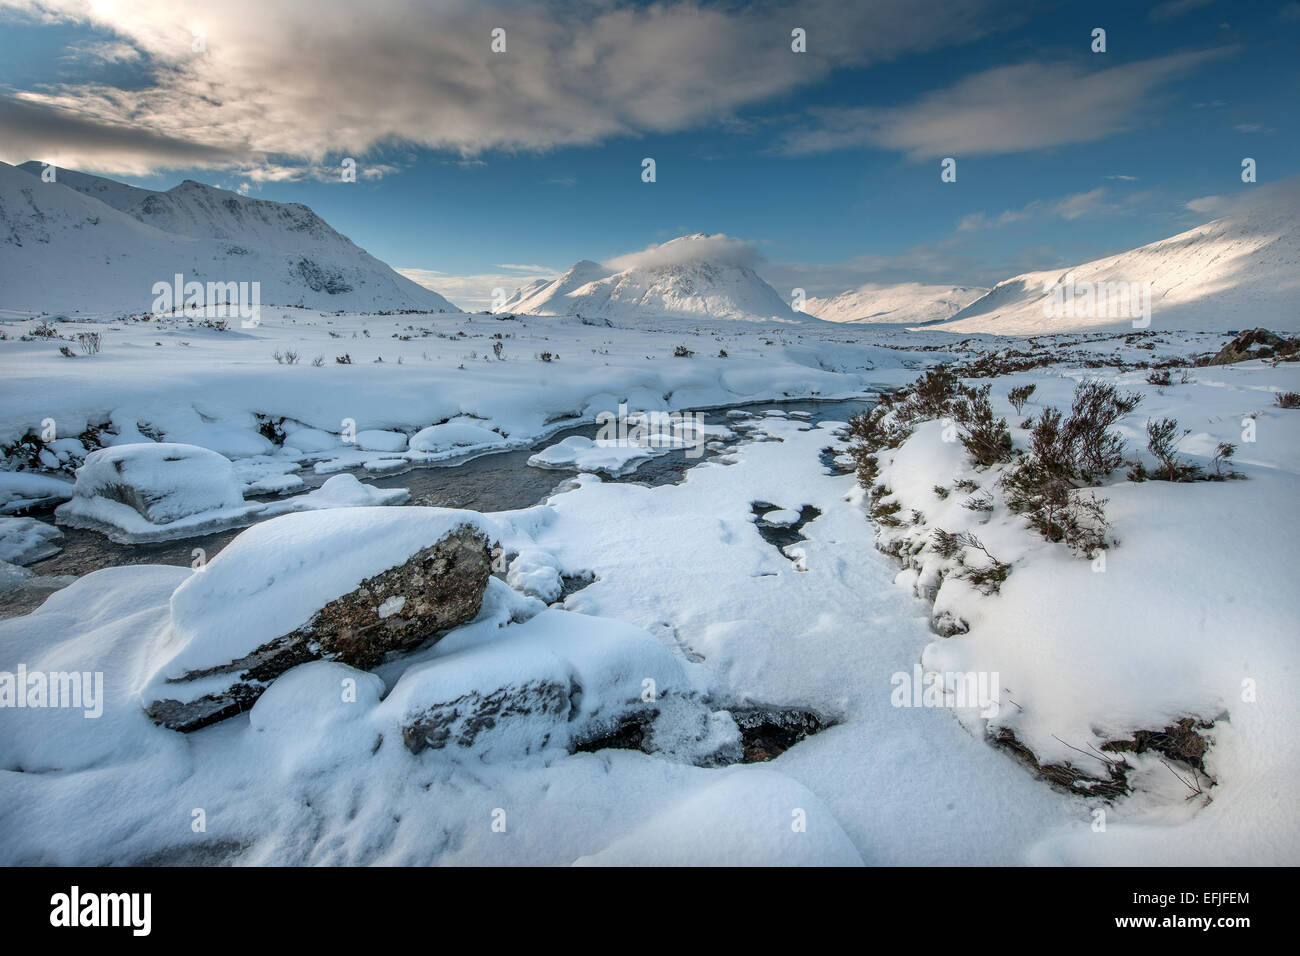 Winter view of Buachaille Etive Mhor, Glencoe, West Highlands - Stock Image